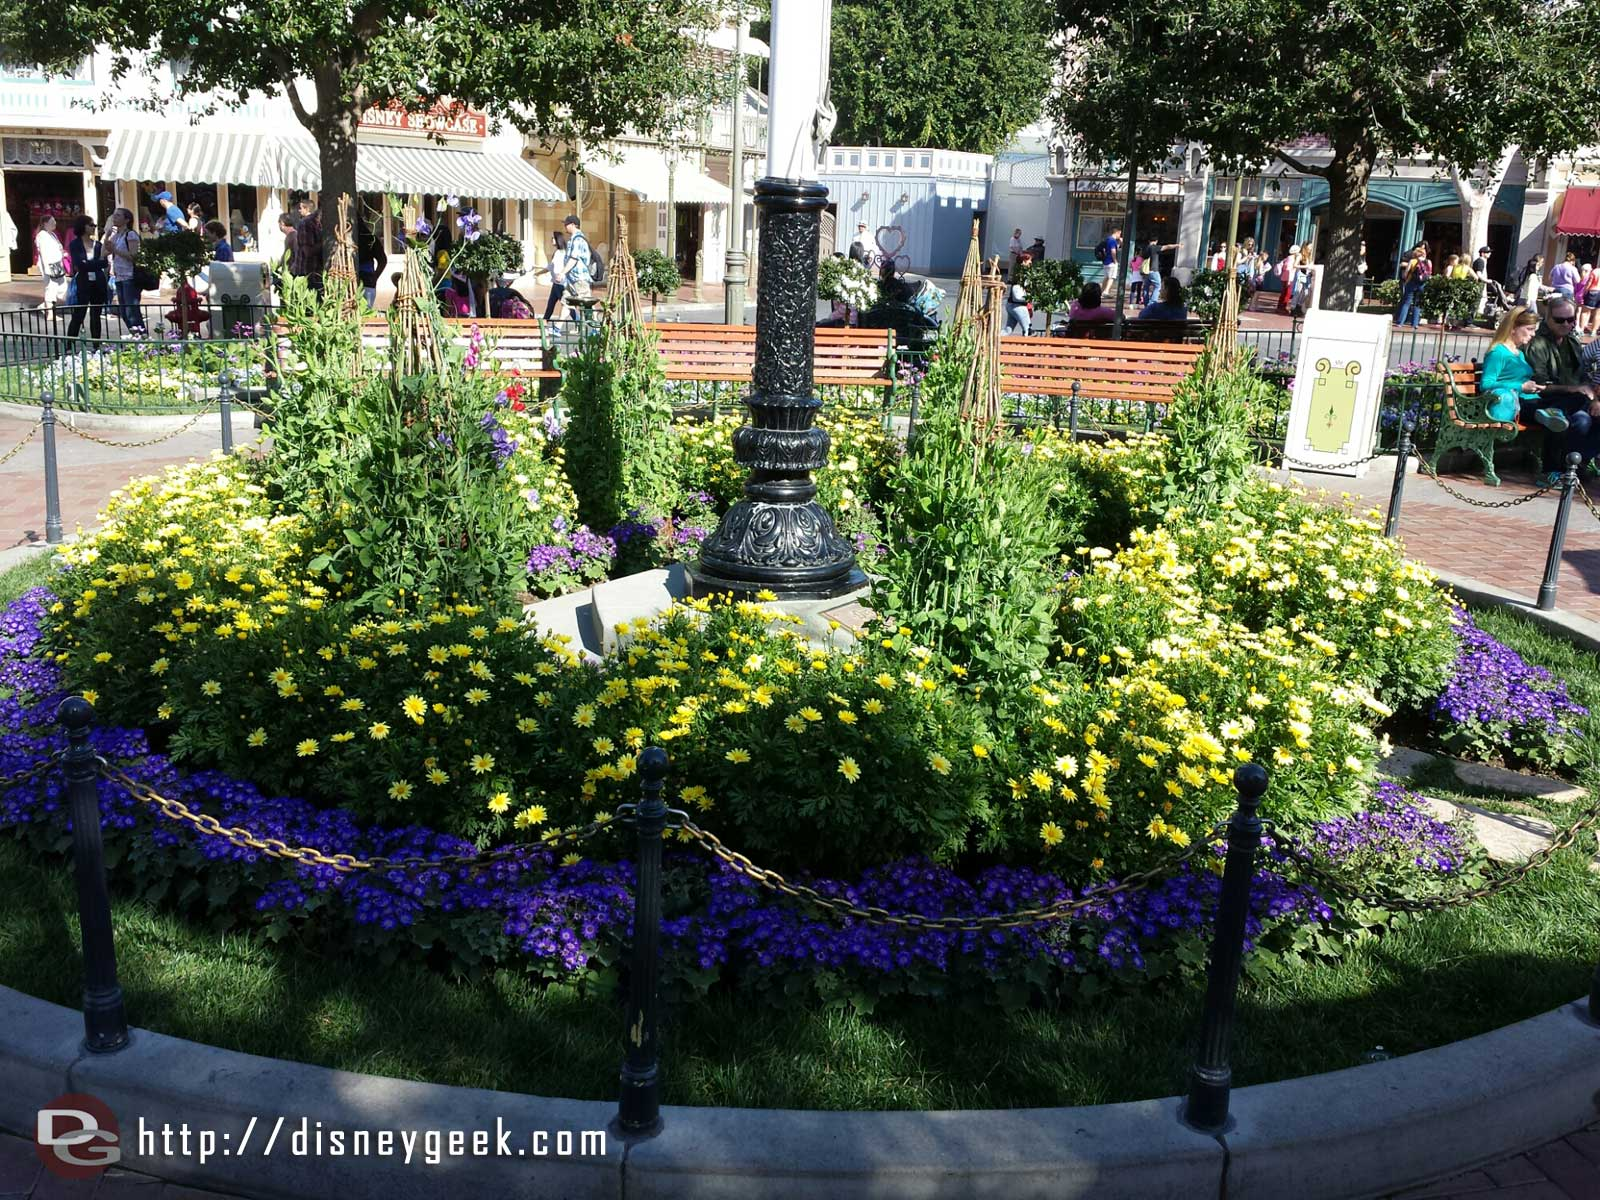 A look at the plants around the flag pole Town Square #Disneyland